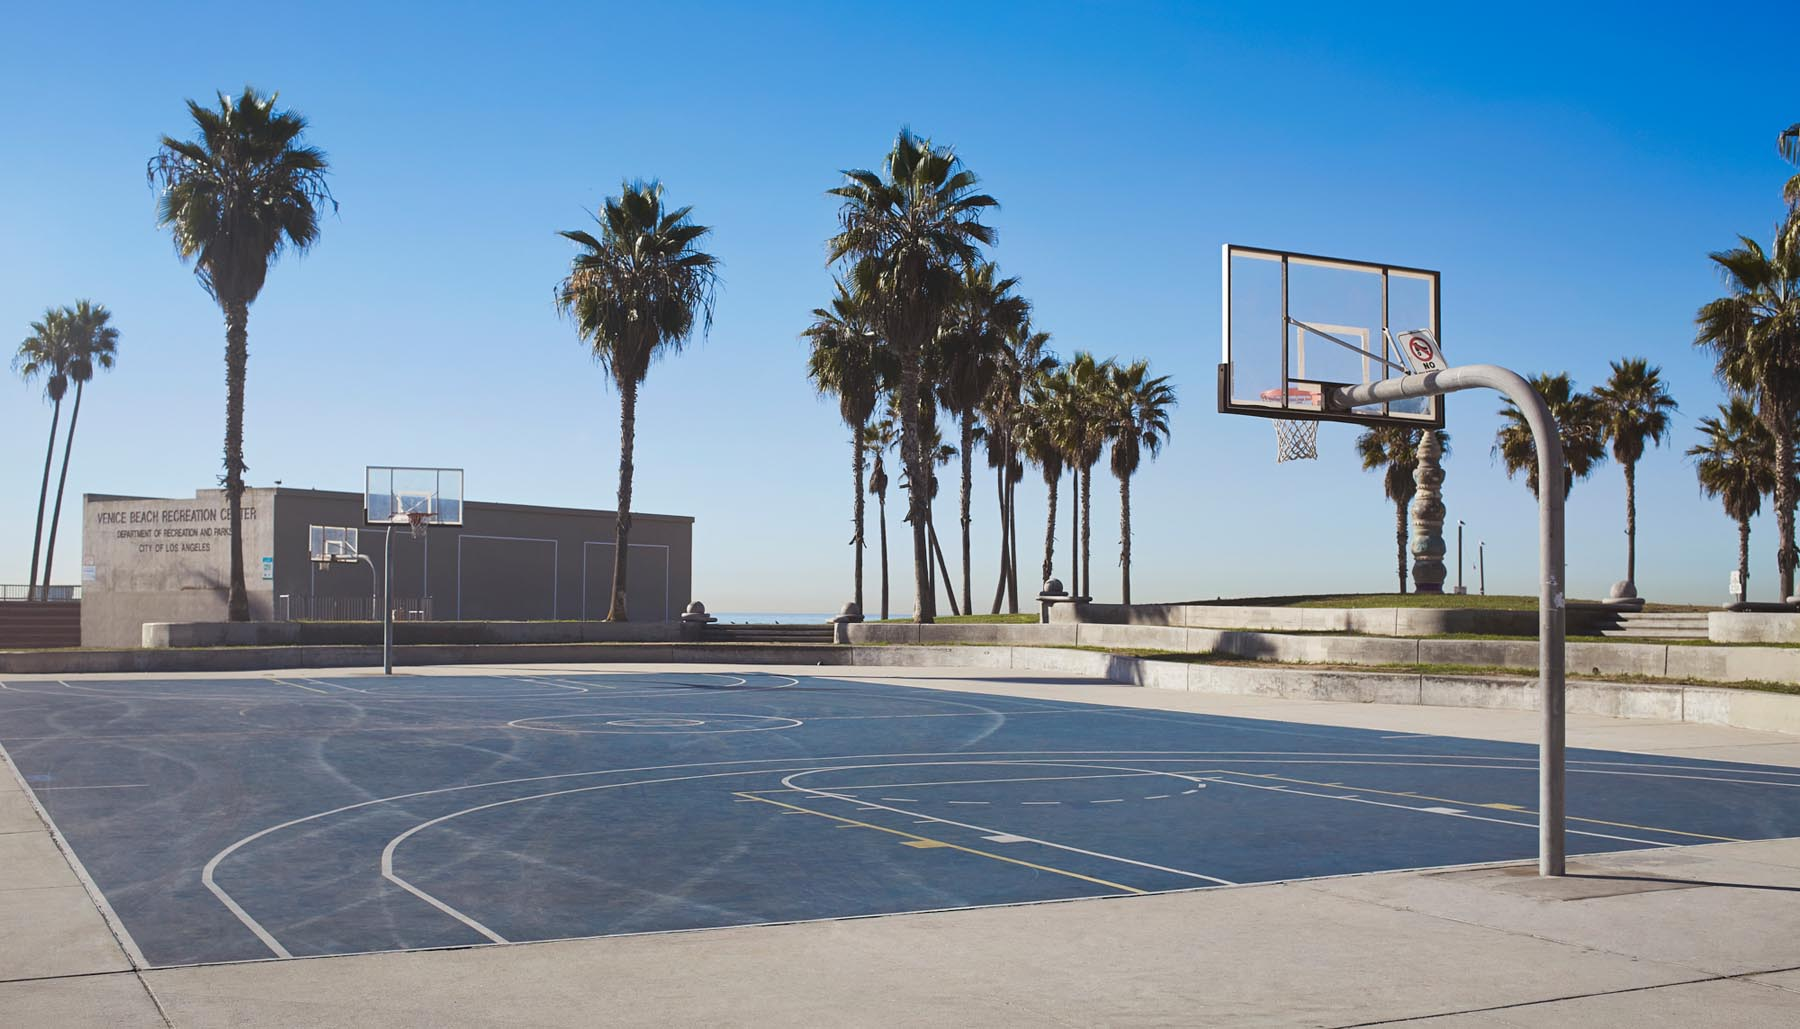 Duncan Nicholls Basketball Court